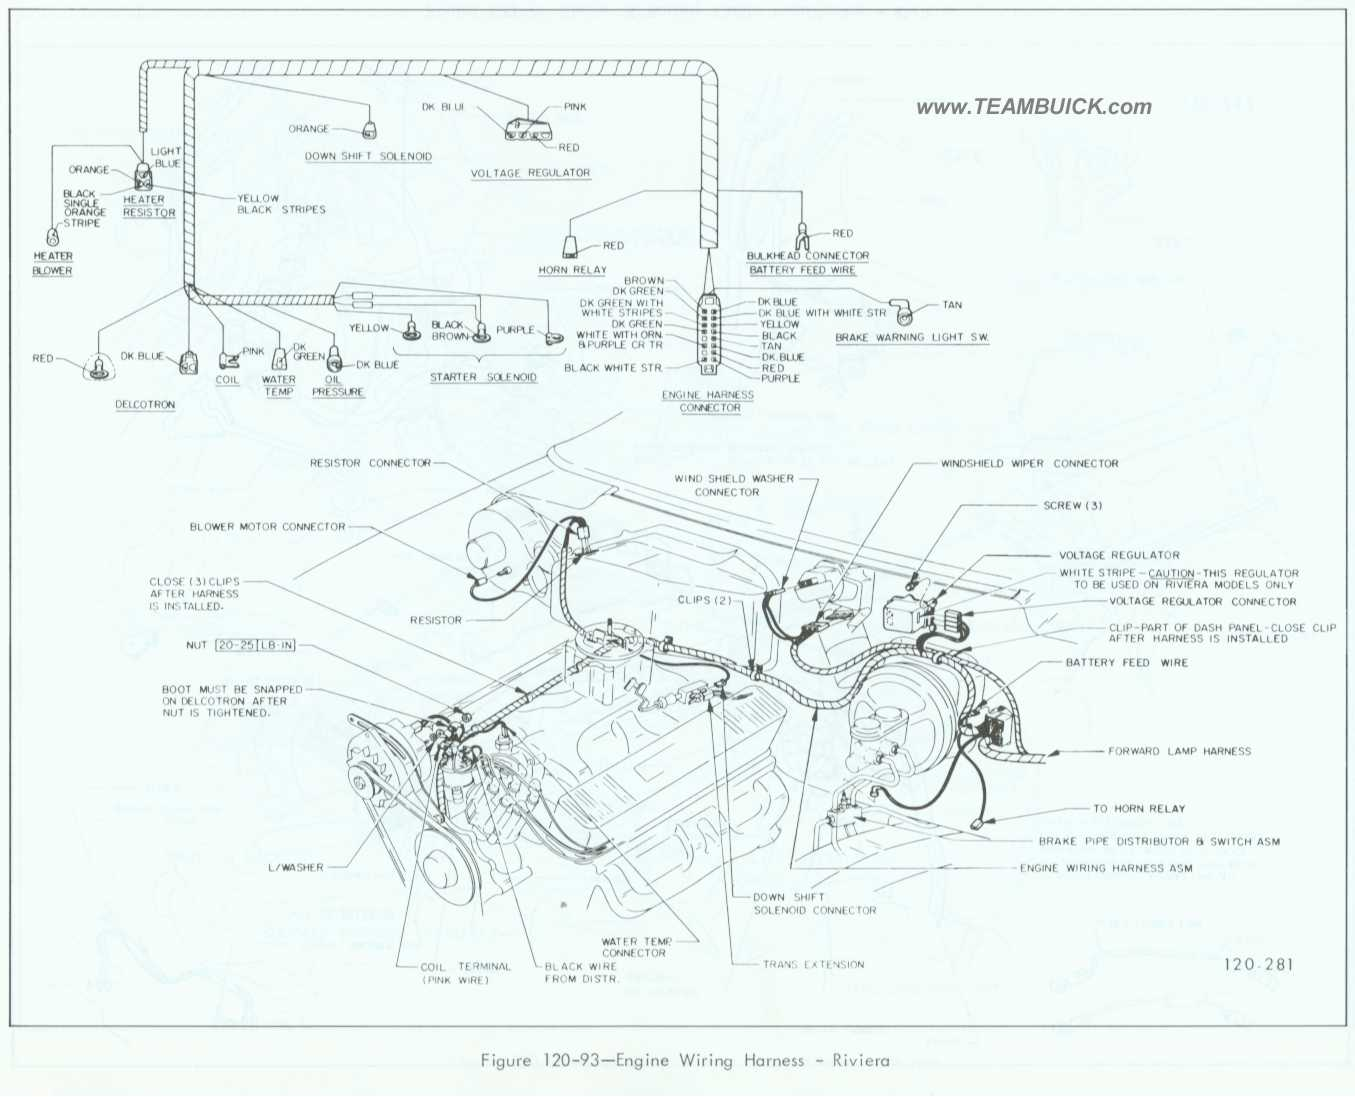 67 Chevelle Engine Wiring Diagram Library 1967 Buick Riviera Harness Rh Teambuick Com Vw Beetle